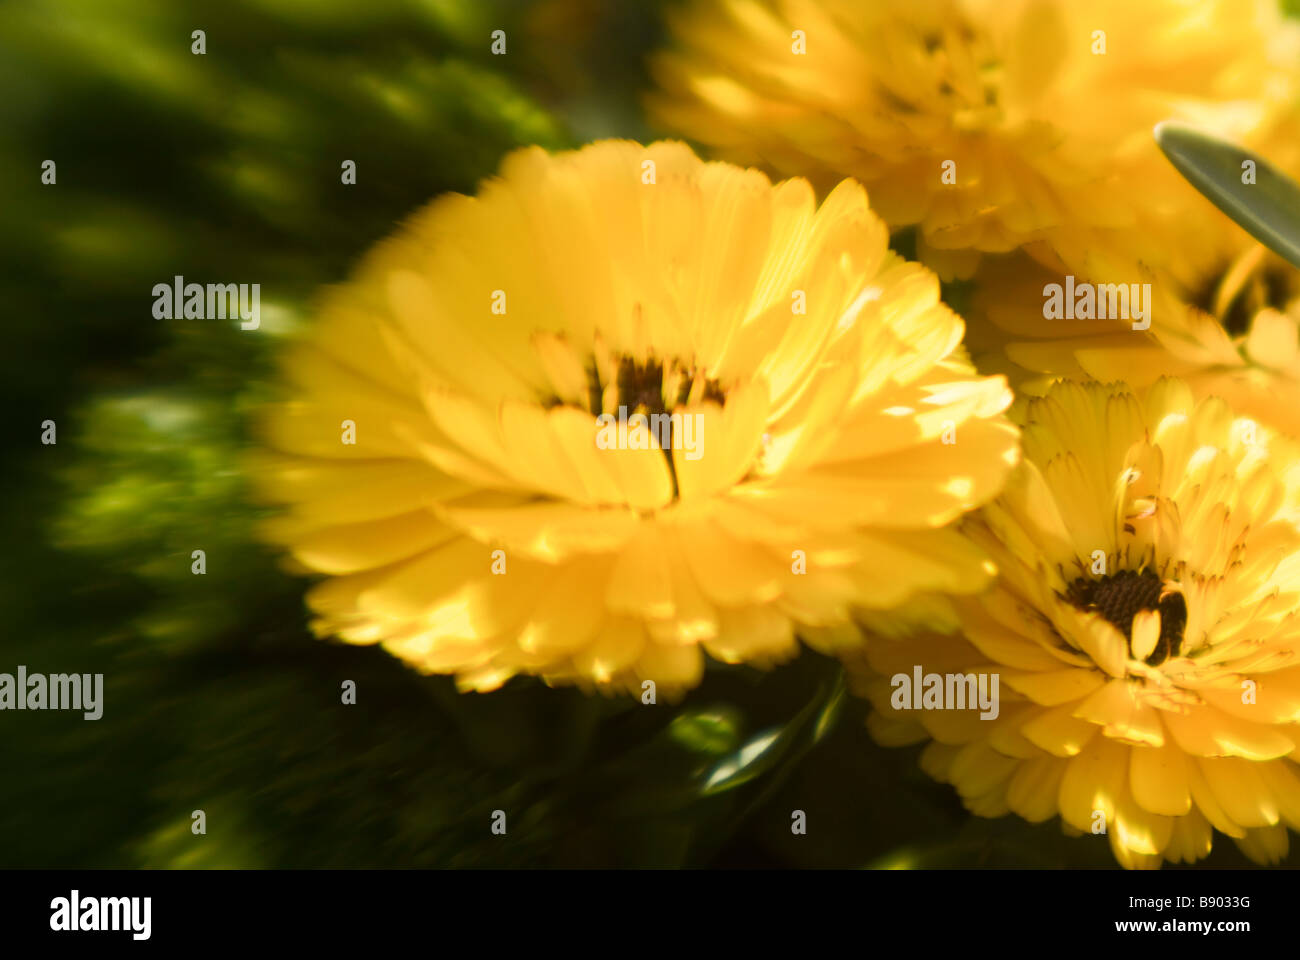 Yellow flower with brown center stock photos yellow flower with three yellow flowers stock image mightylinksfo